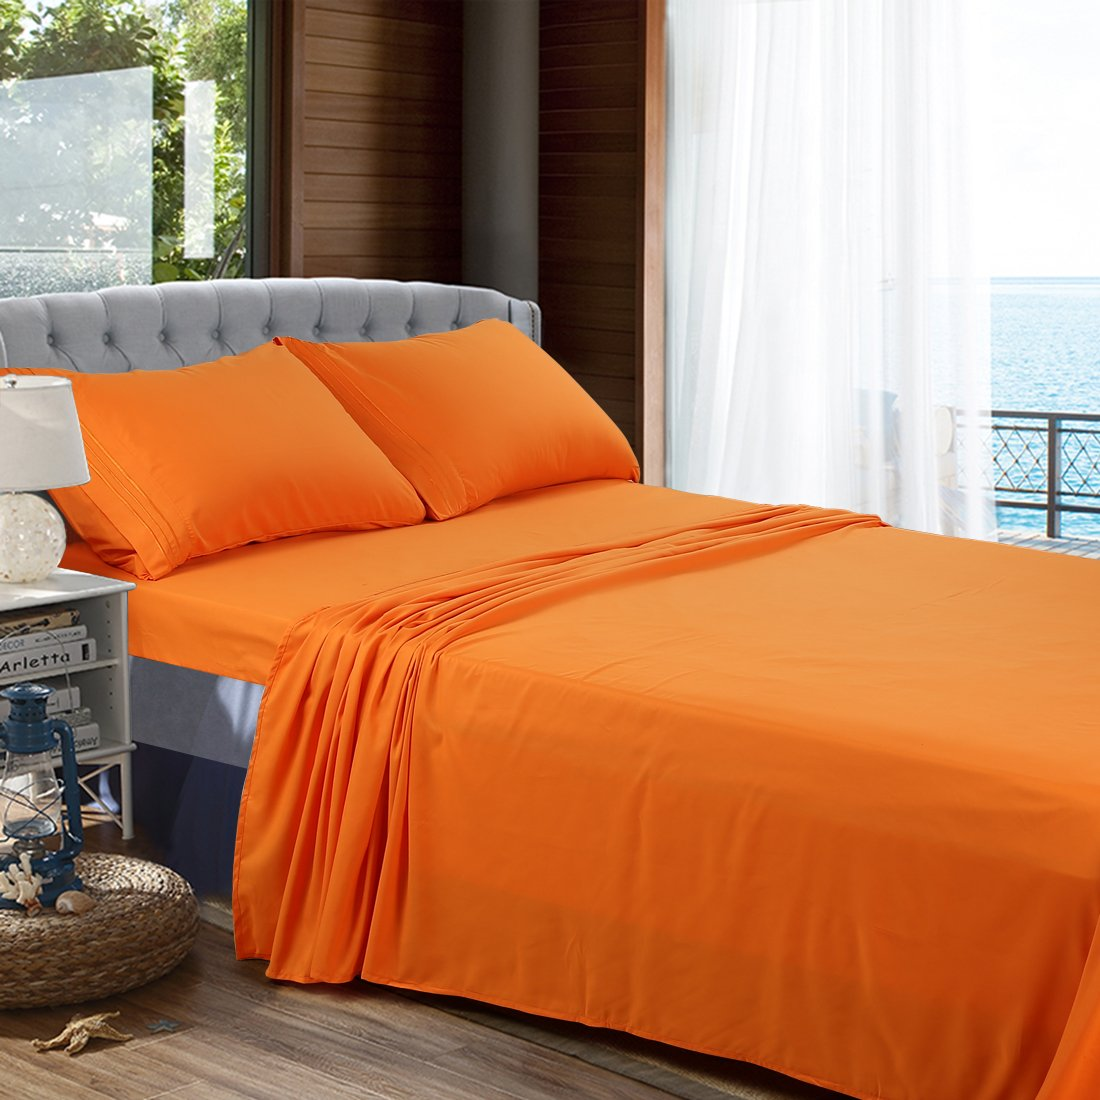 BLC Bed Sheet Set, Hypoallergenic Microfiber 4-piece sheets with 14-Inch Deep Pocket King, Orange